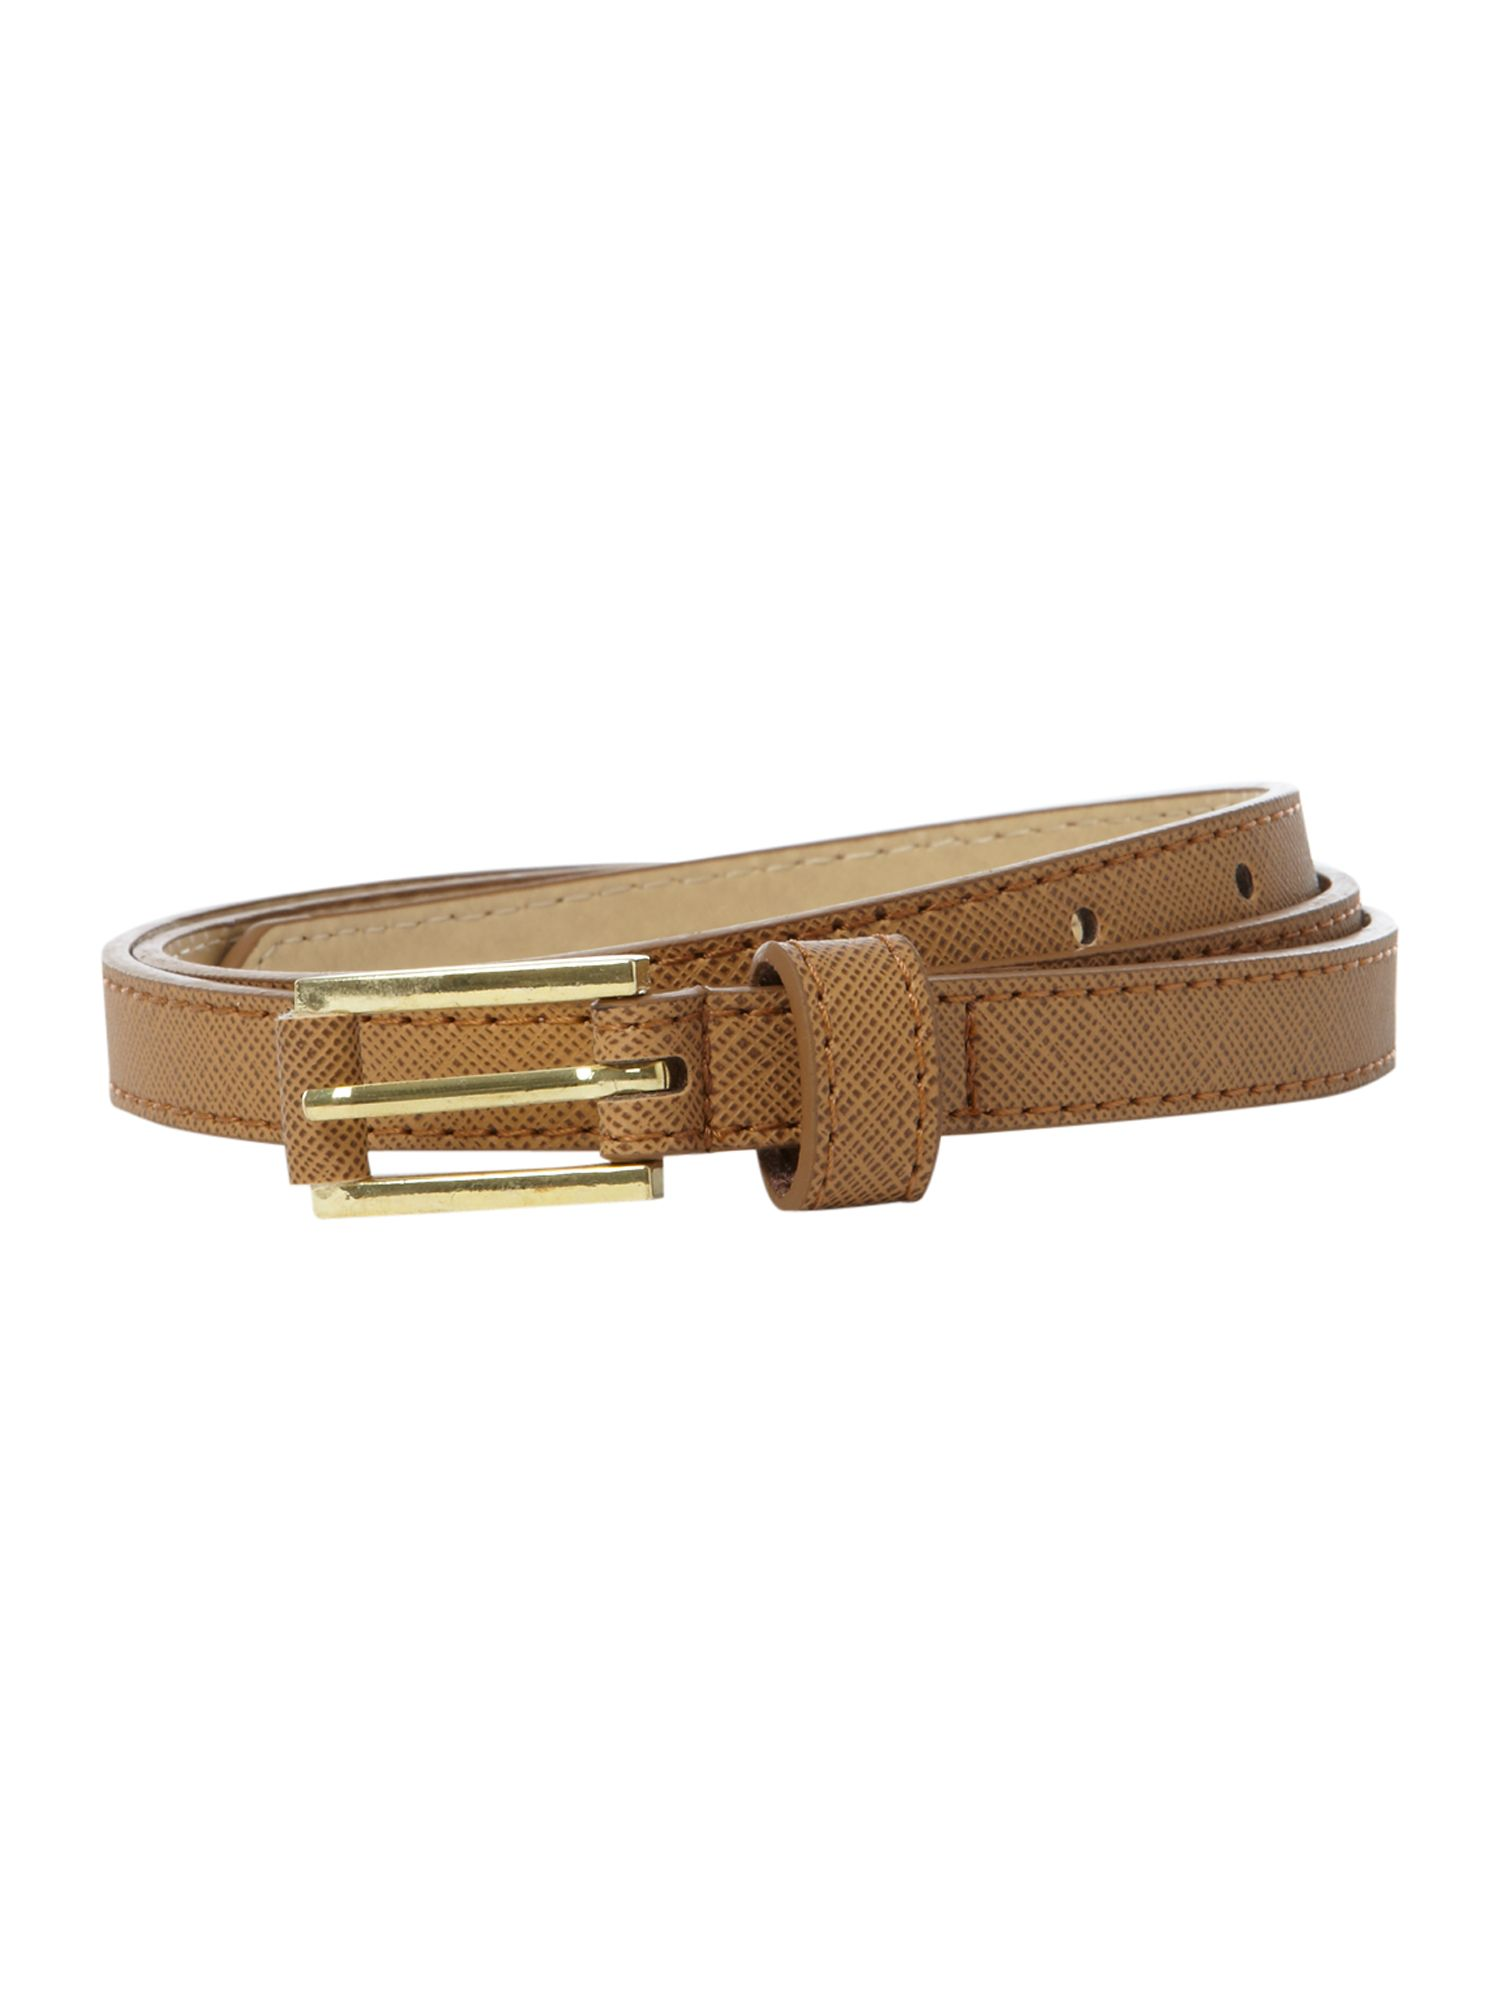 Simple skinny belt